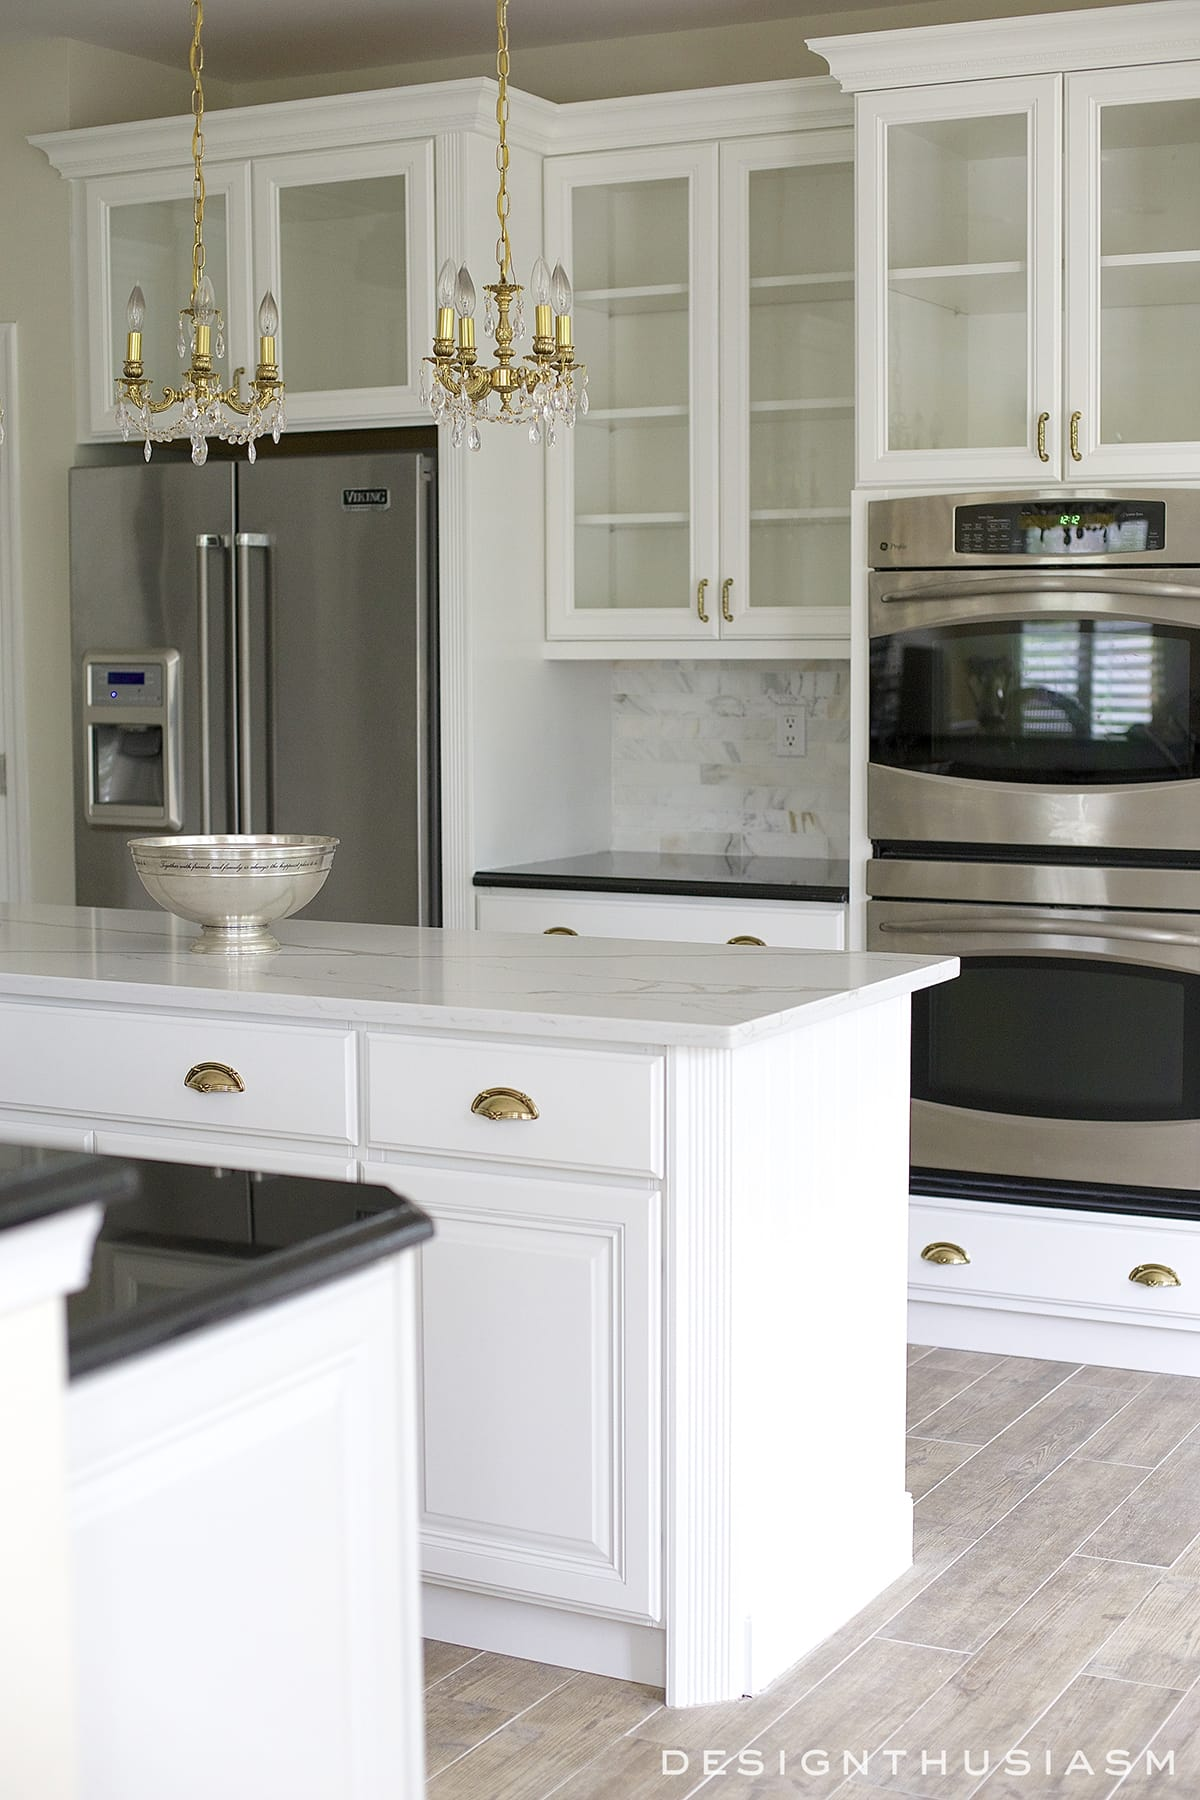 White painted cabinets simplify a kitchen renovation